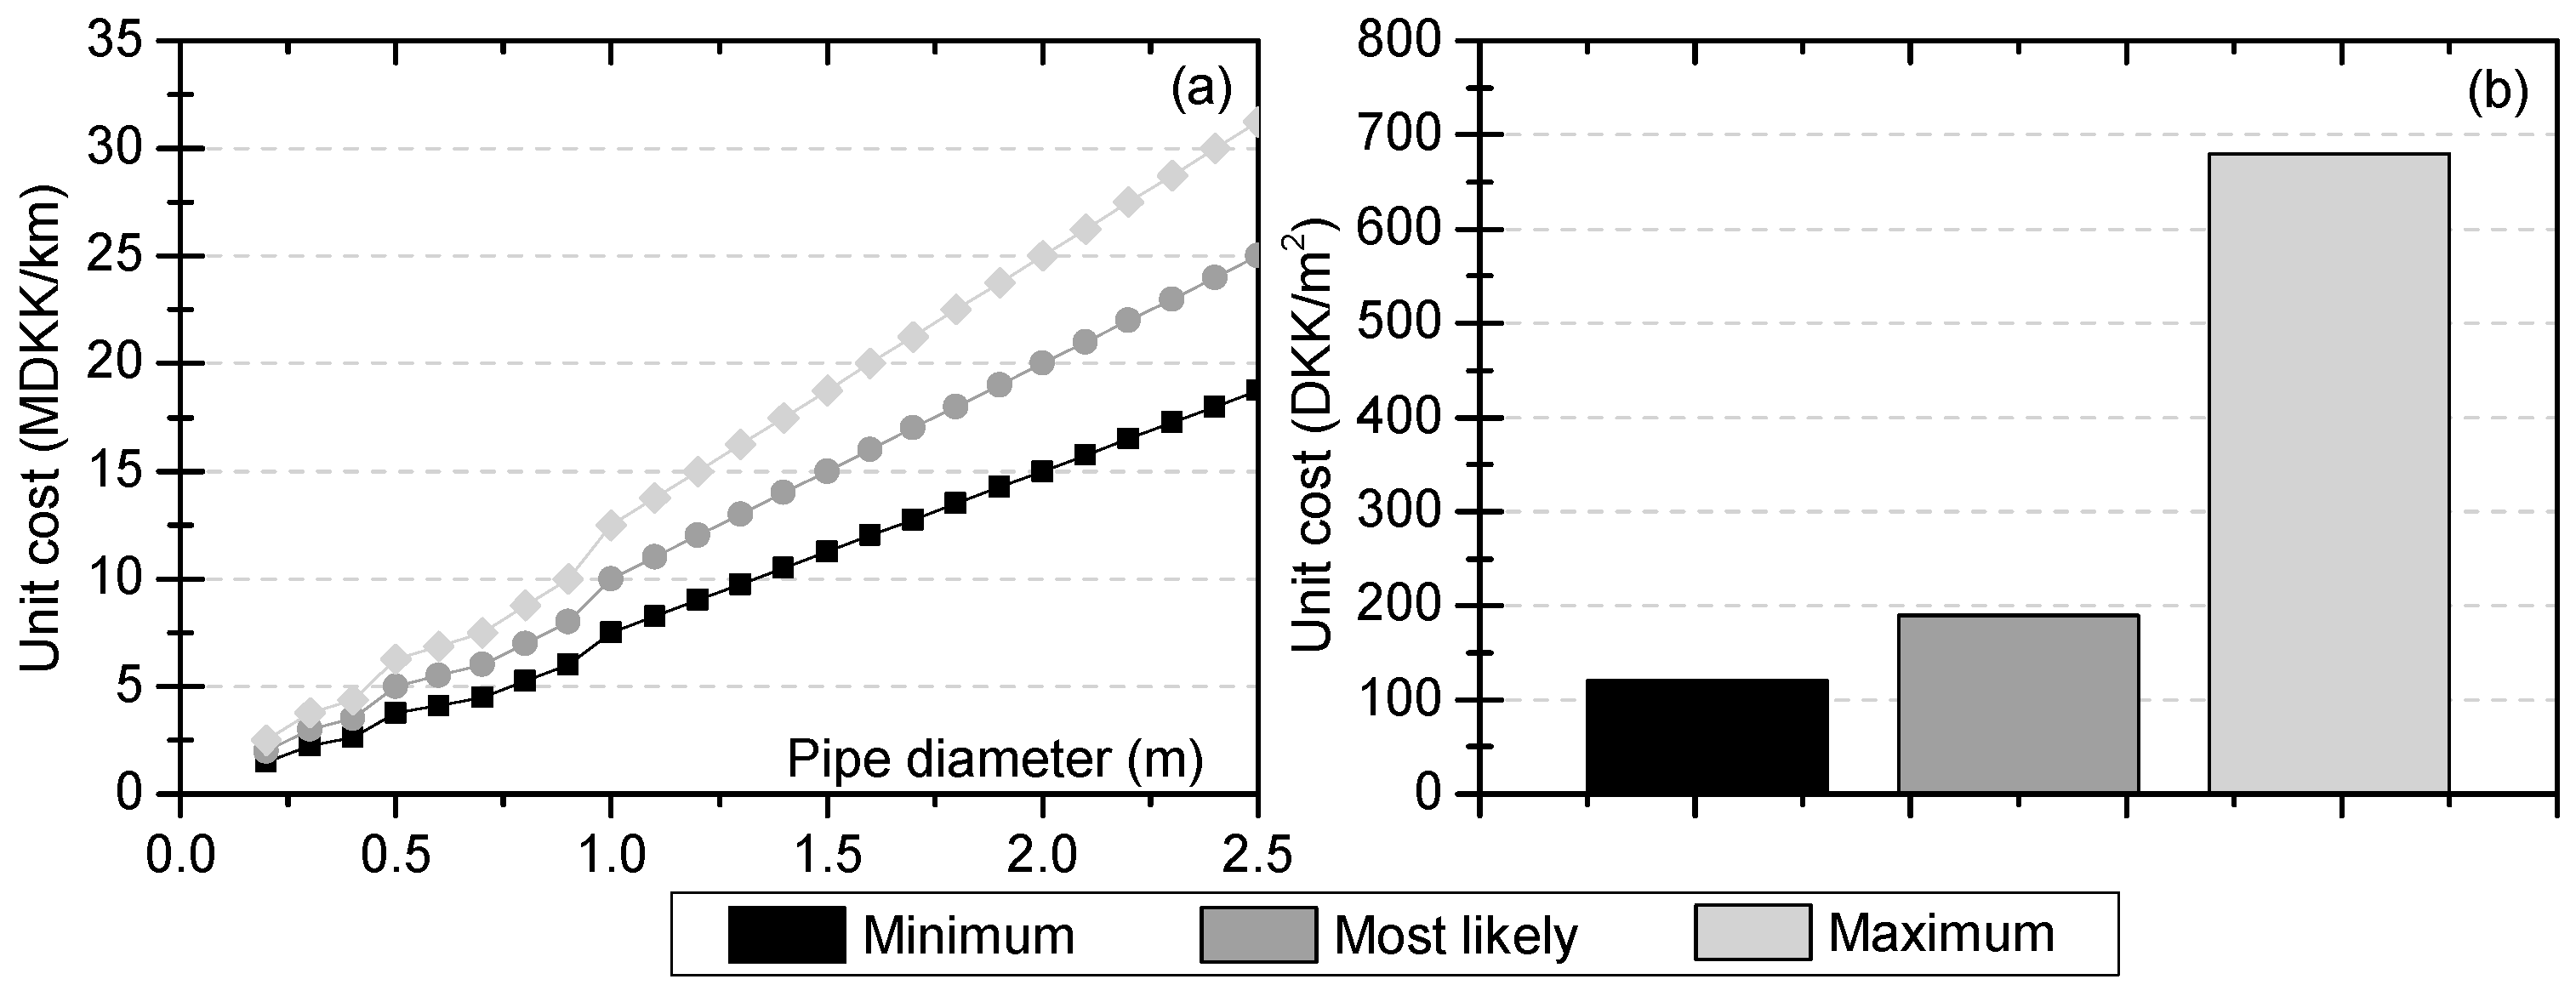 Water | Free Full-Text | Uncertainty Assessment of Climate